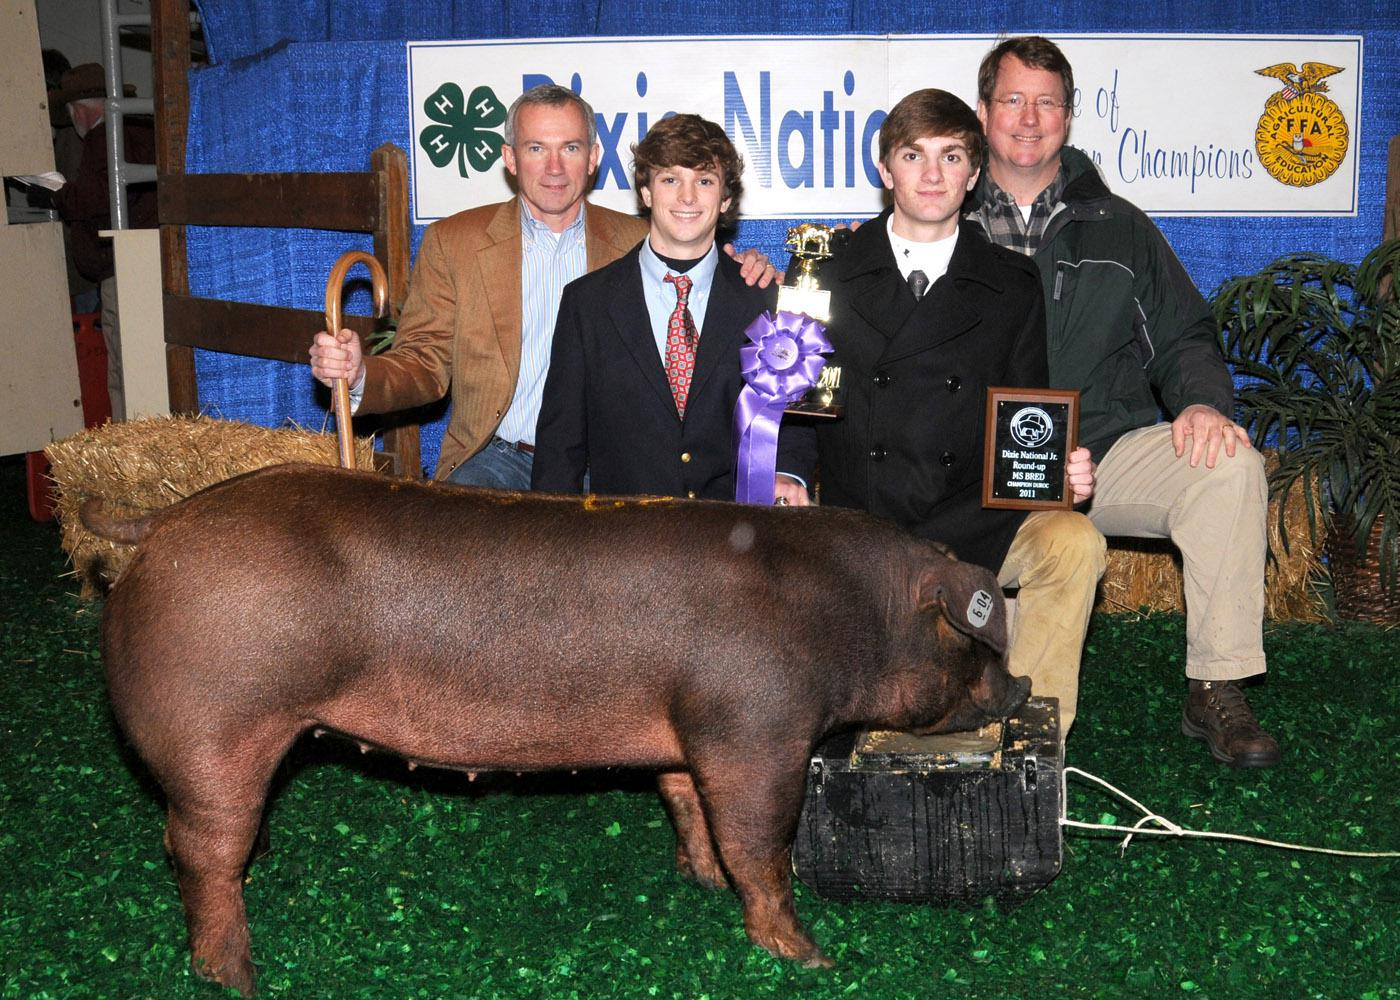 John Lundy (back left) and Eric Clark (back right) along with First South Farm Credit, Wilson's Meat House, Cecil Harper, Kipp Brown and Jim Newsome purchased a Champion Durac Hog from Tanner Ainsworth (front left) and Cory Ainsworth (front right) at the 2011 Dixie National Sale of Junior Champions. The buyers donated the meat to the Leroy Shook family. (Photo by Scott Corey)